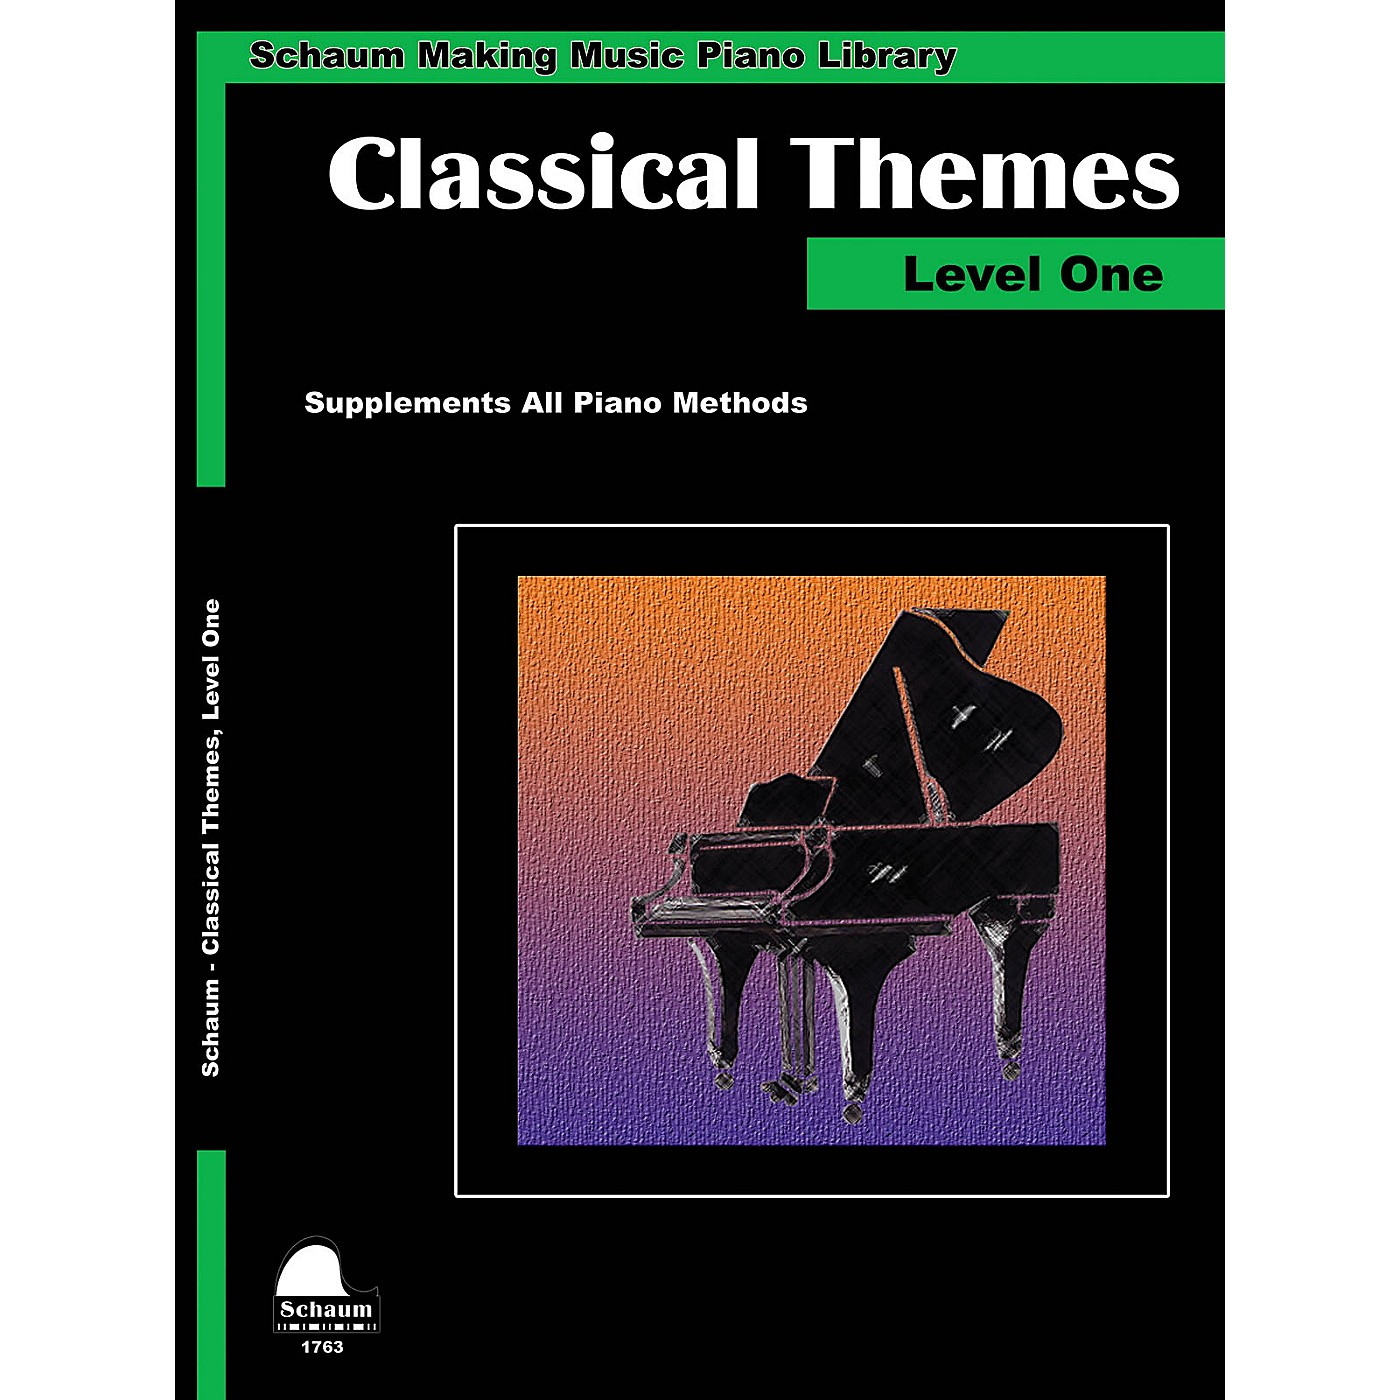 SCHAUM Classical Themes Level 1 (Schaum Making Music Piano Library) Educational Piano Book (Level Elem) thumbnail